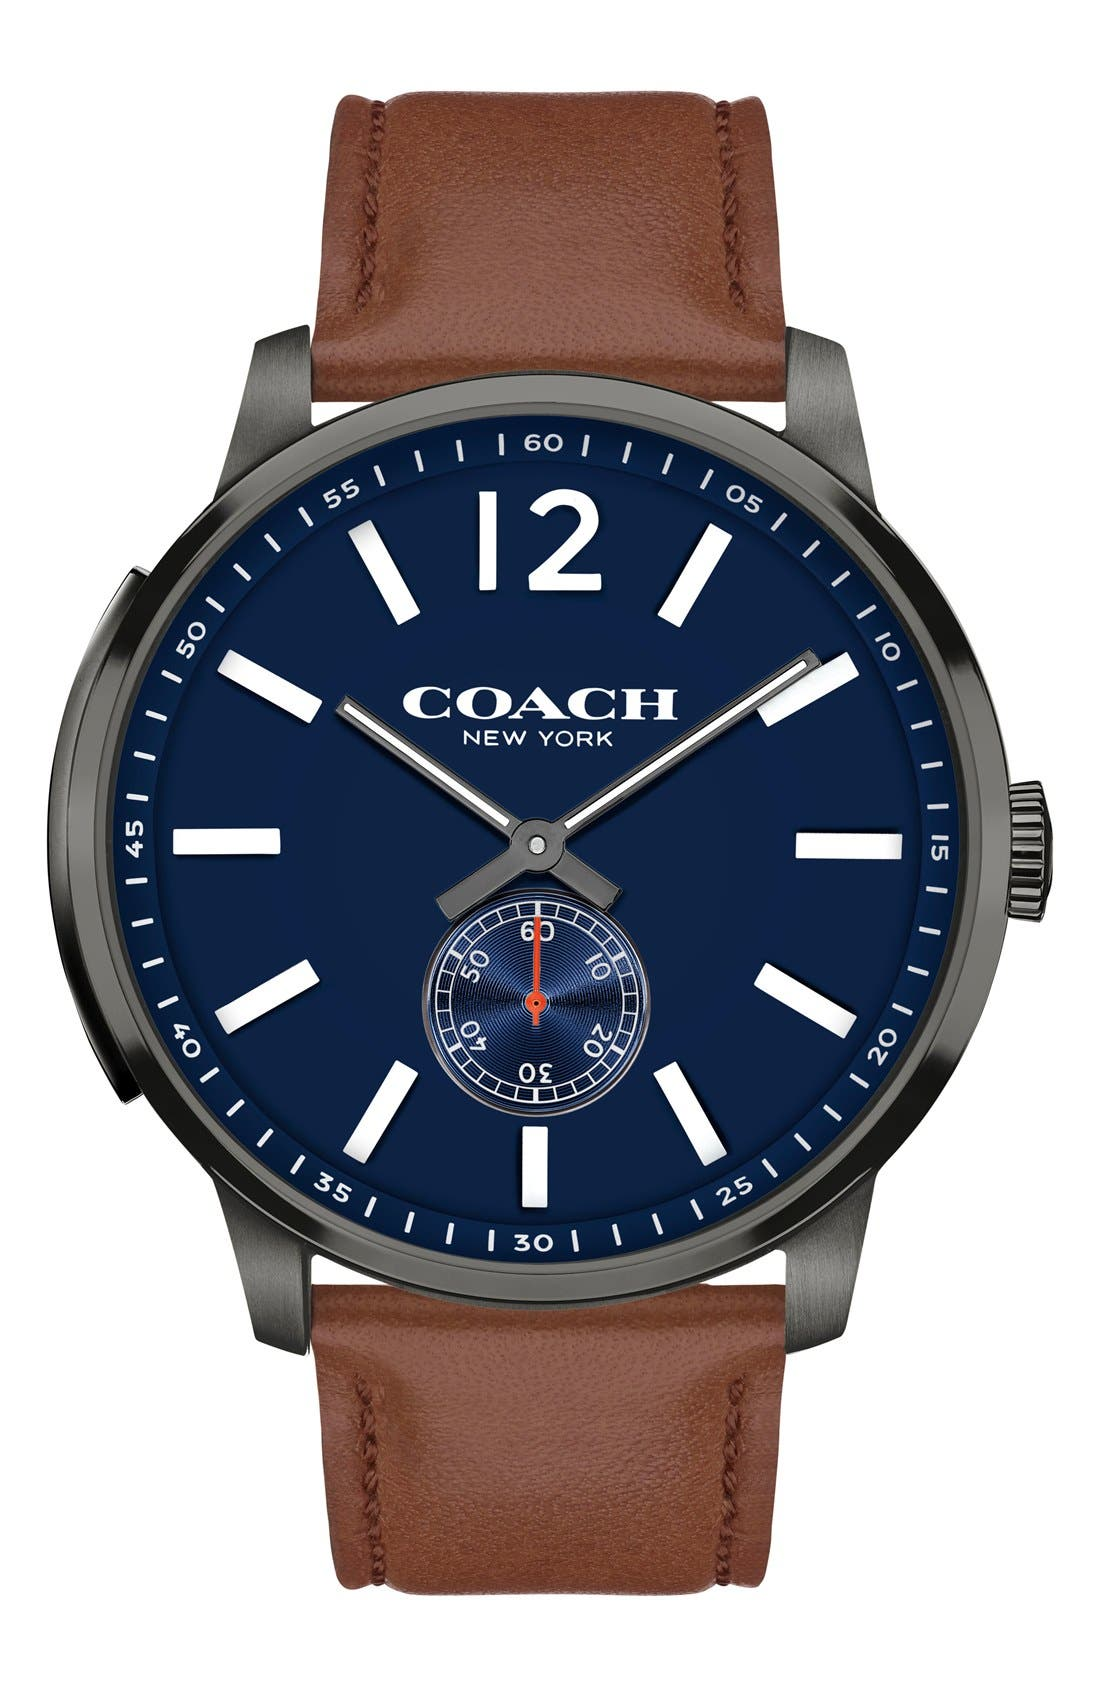 Main Image - COACH 'Bleeker' Leather Strap Watch, 46mm